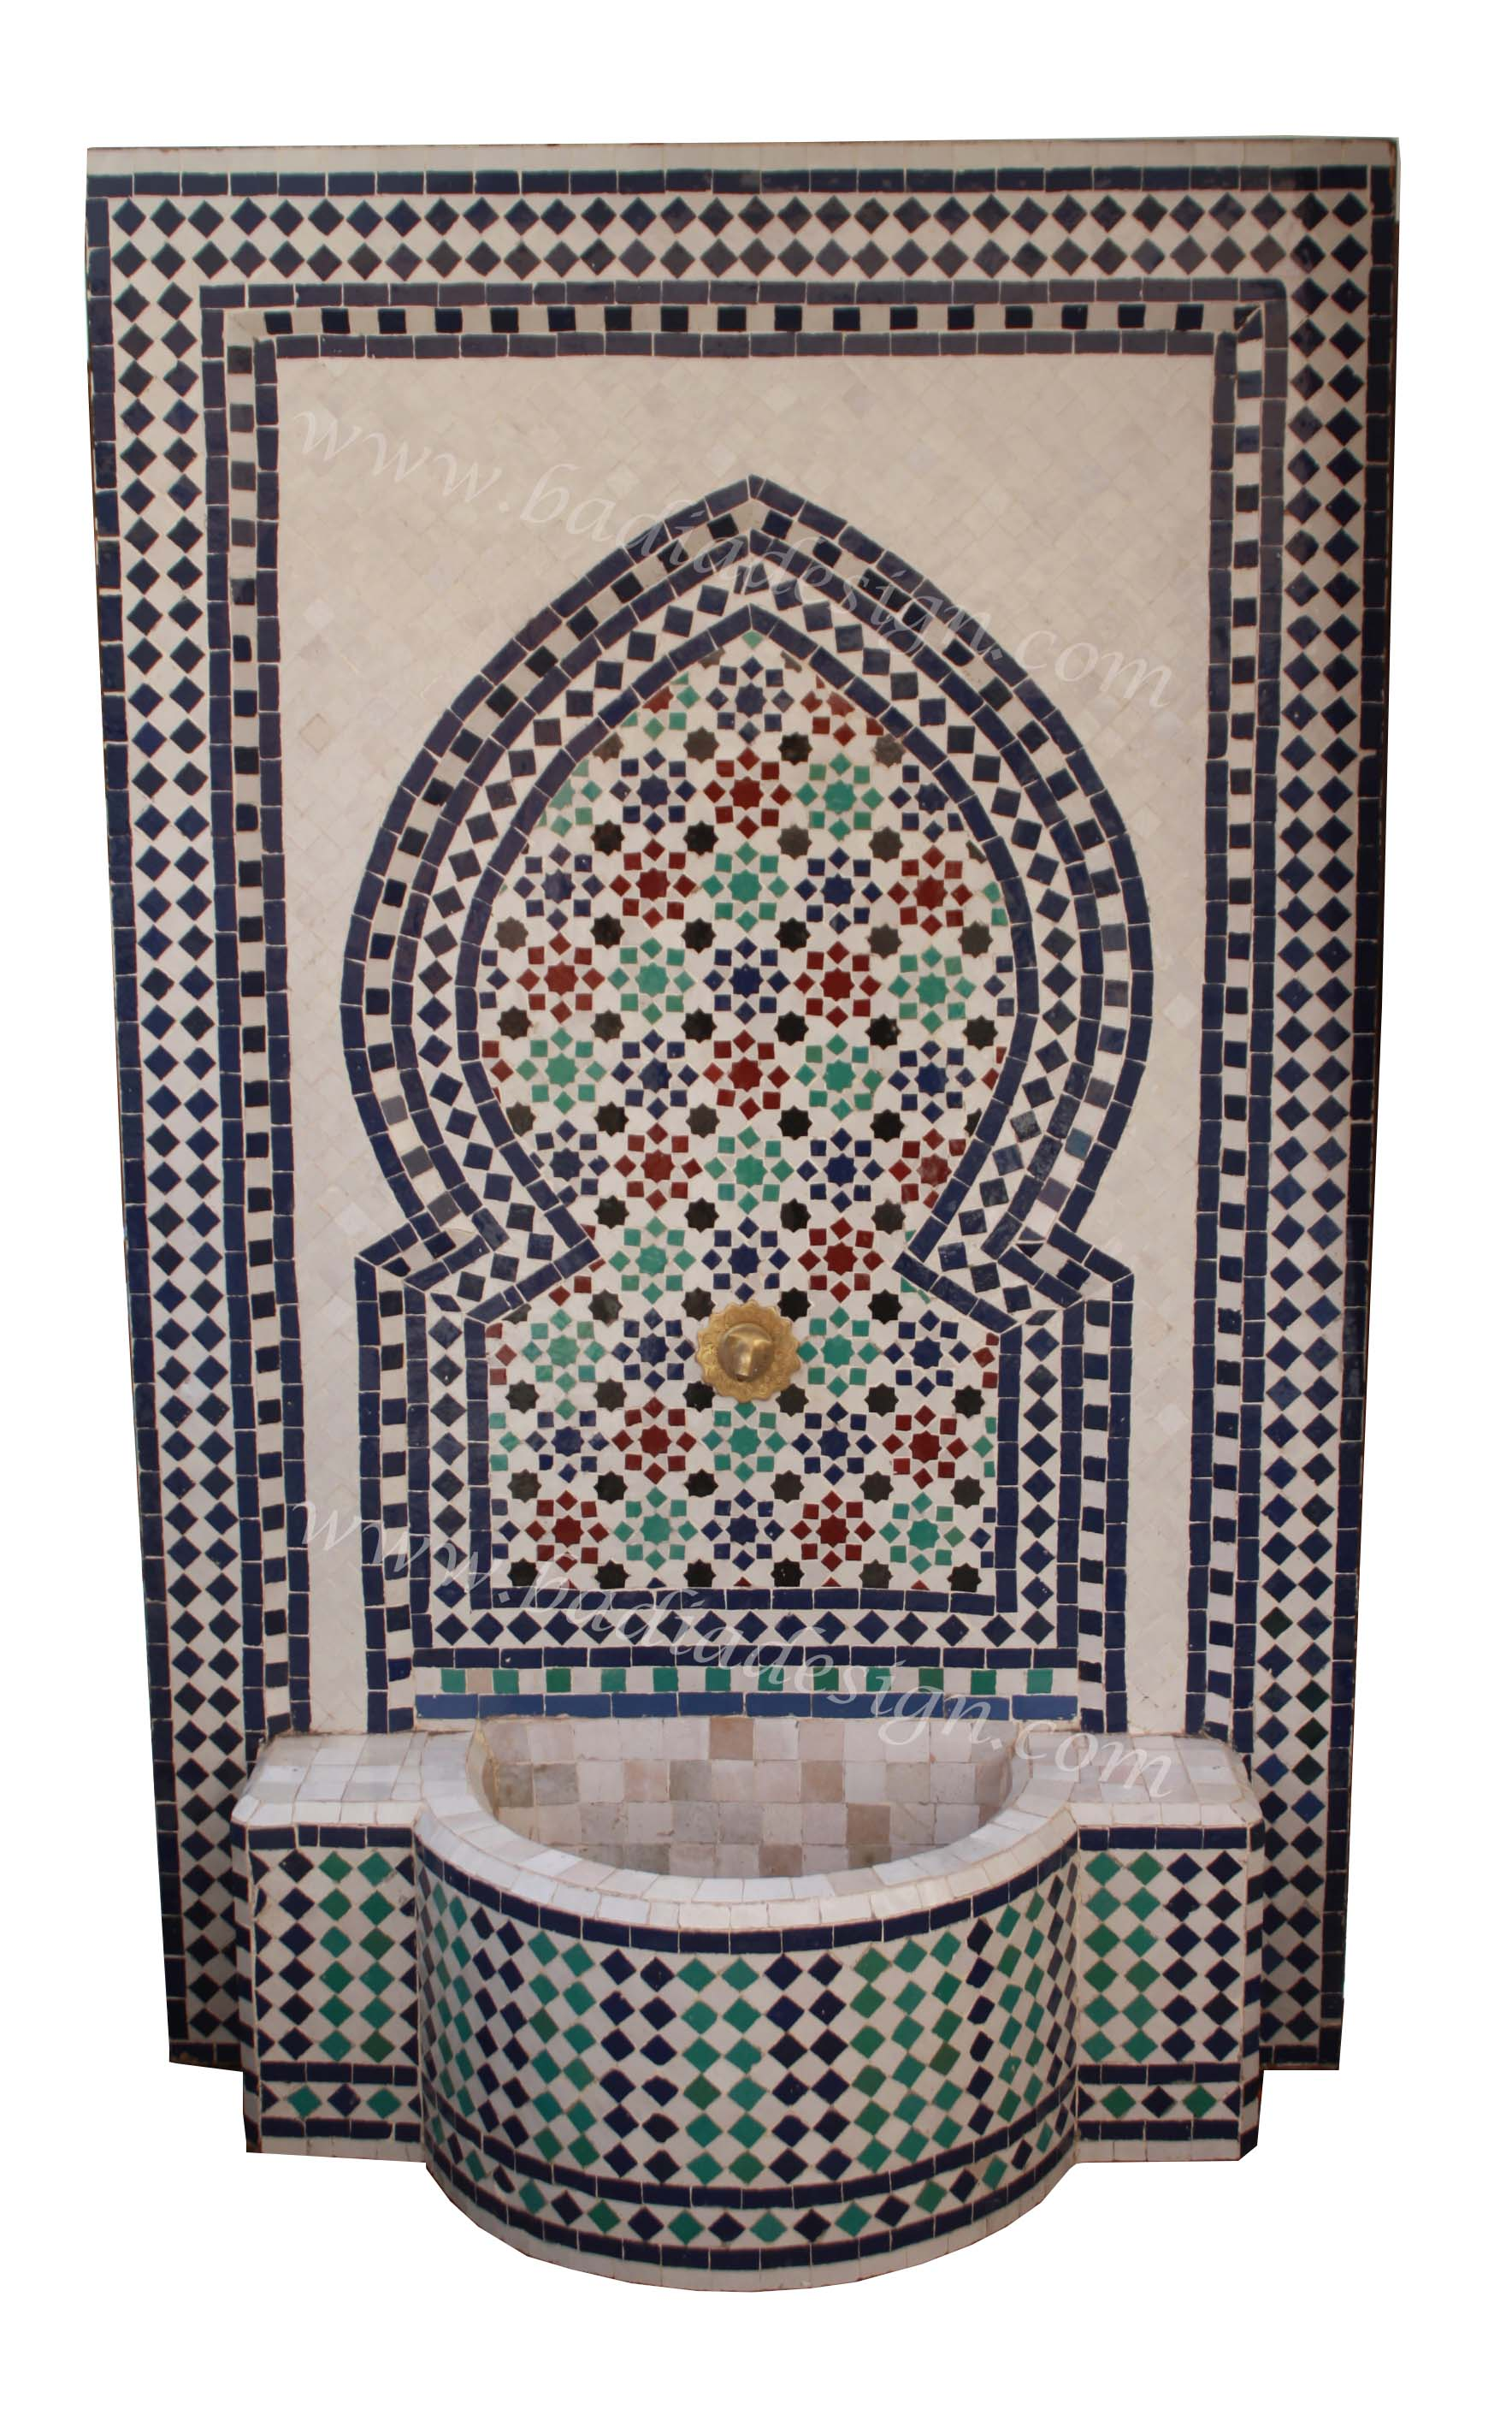 moroccan-water-fountains-los-angeles-mf635.jpg